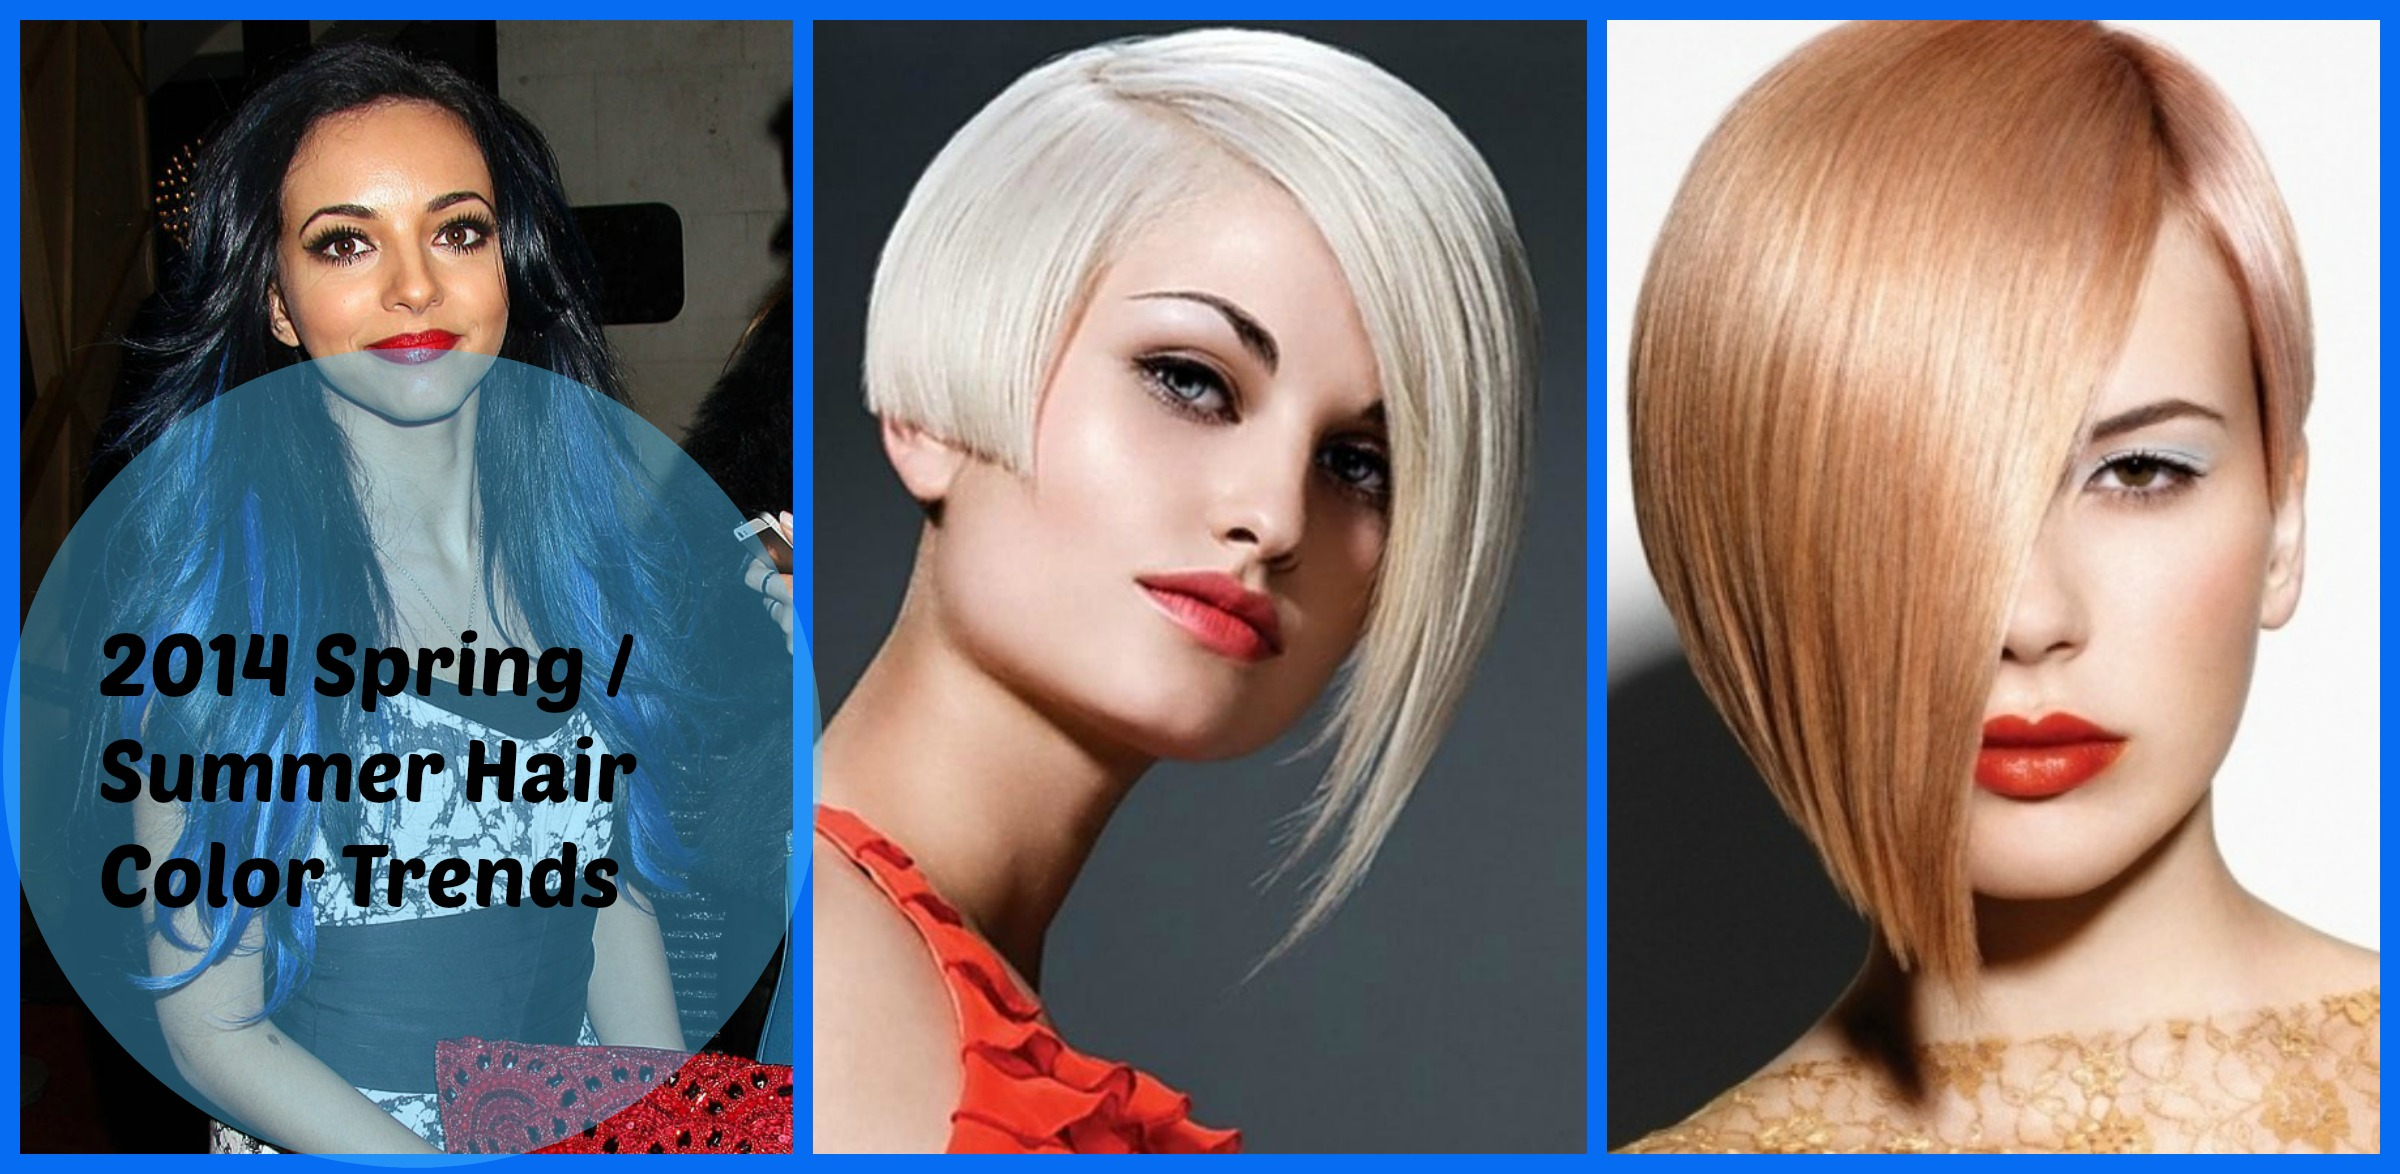 2014 Spring Summer Hair Color Trends